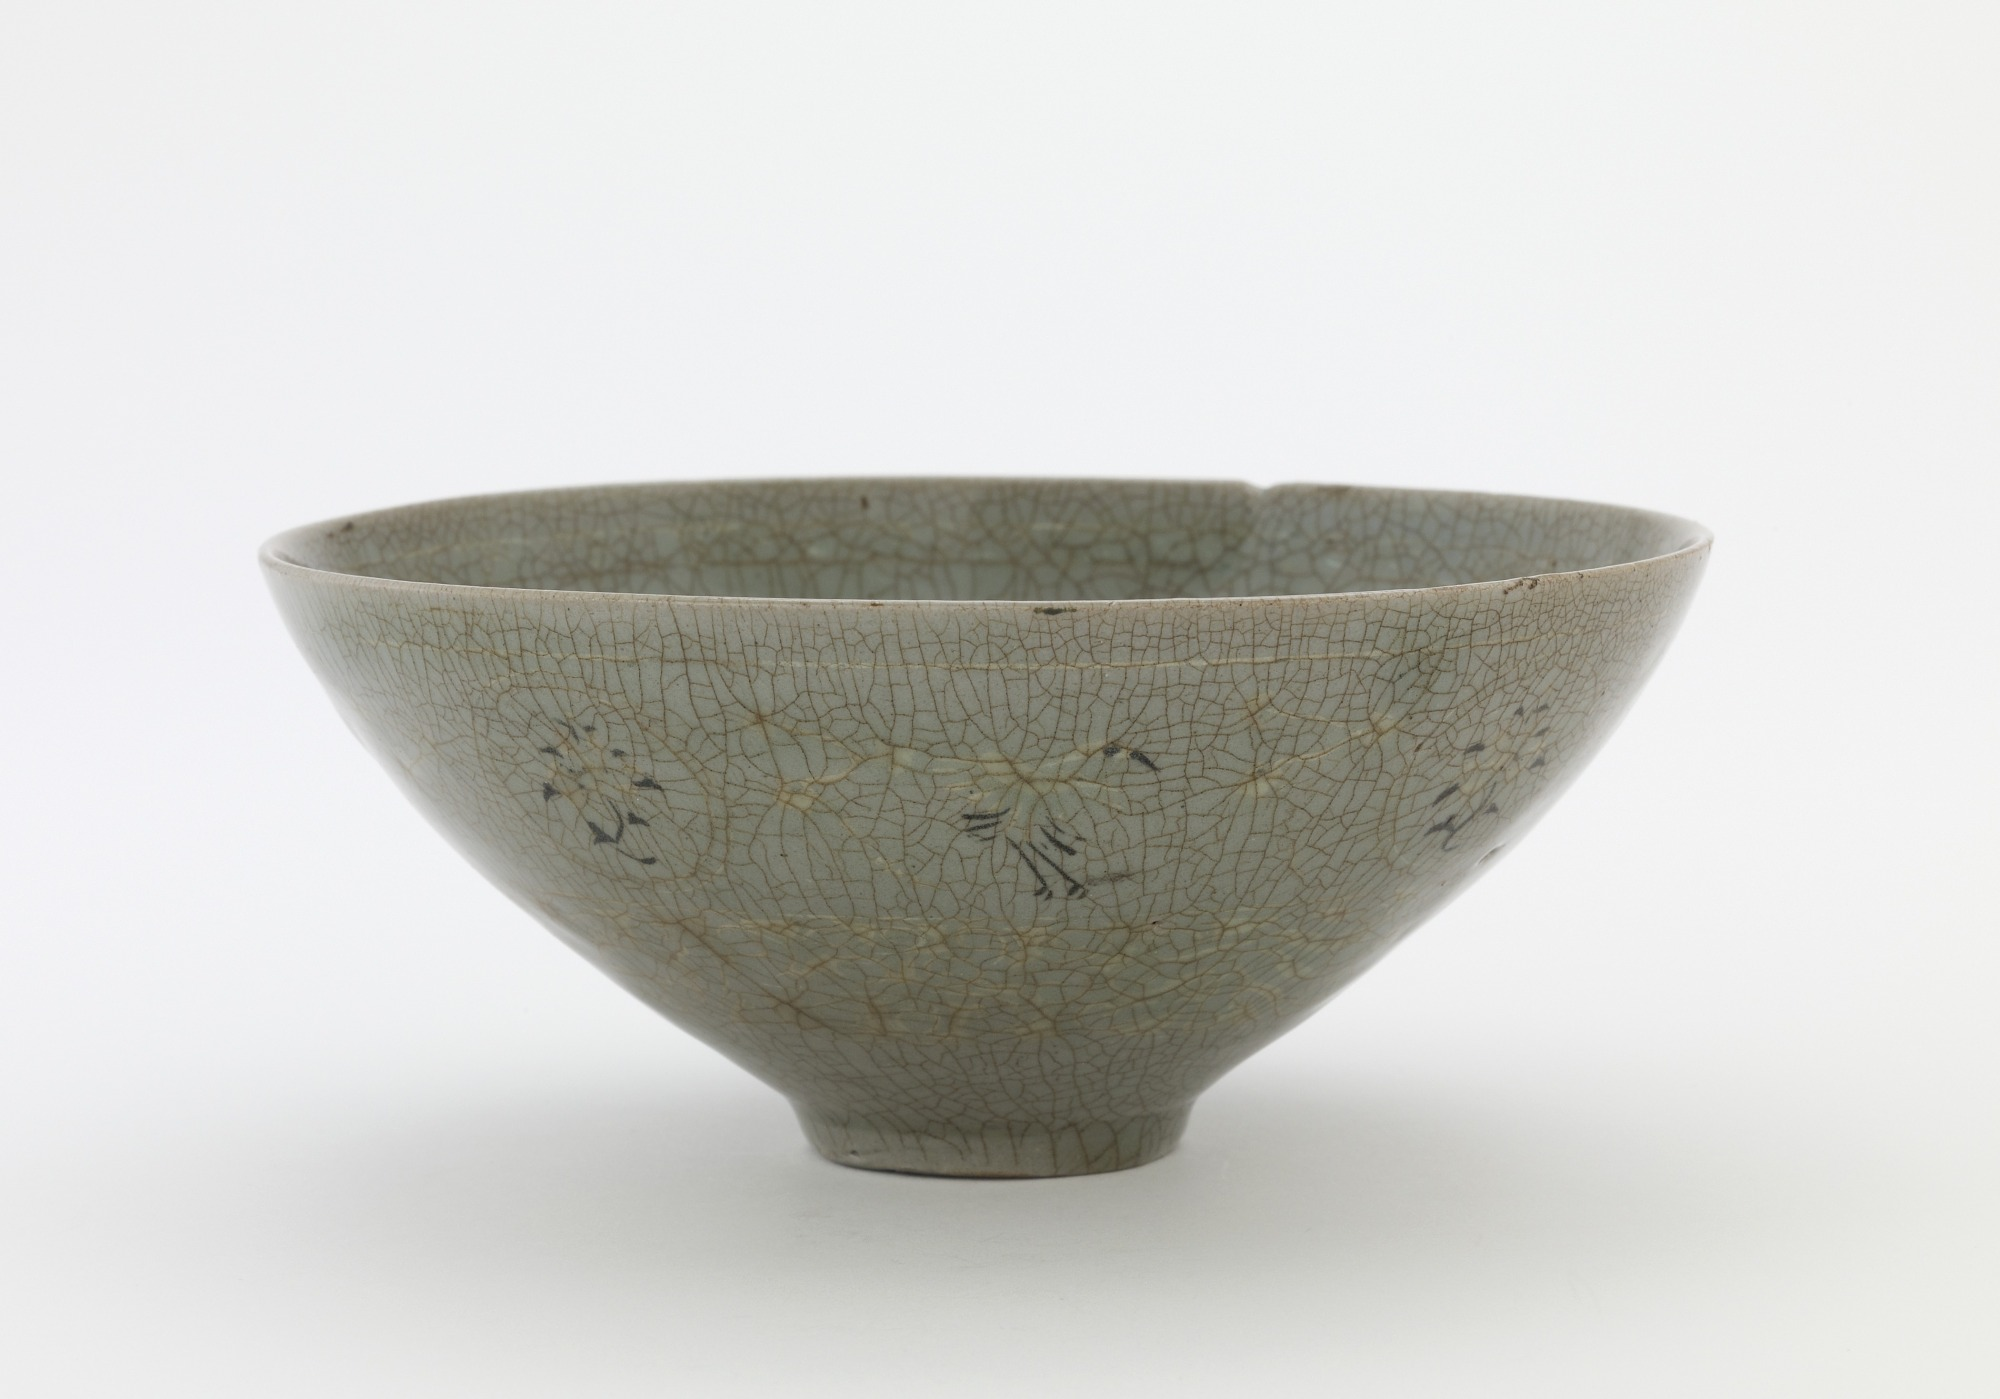 Tea bowl, named Chasen-susugi